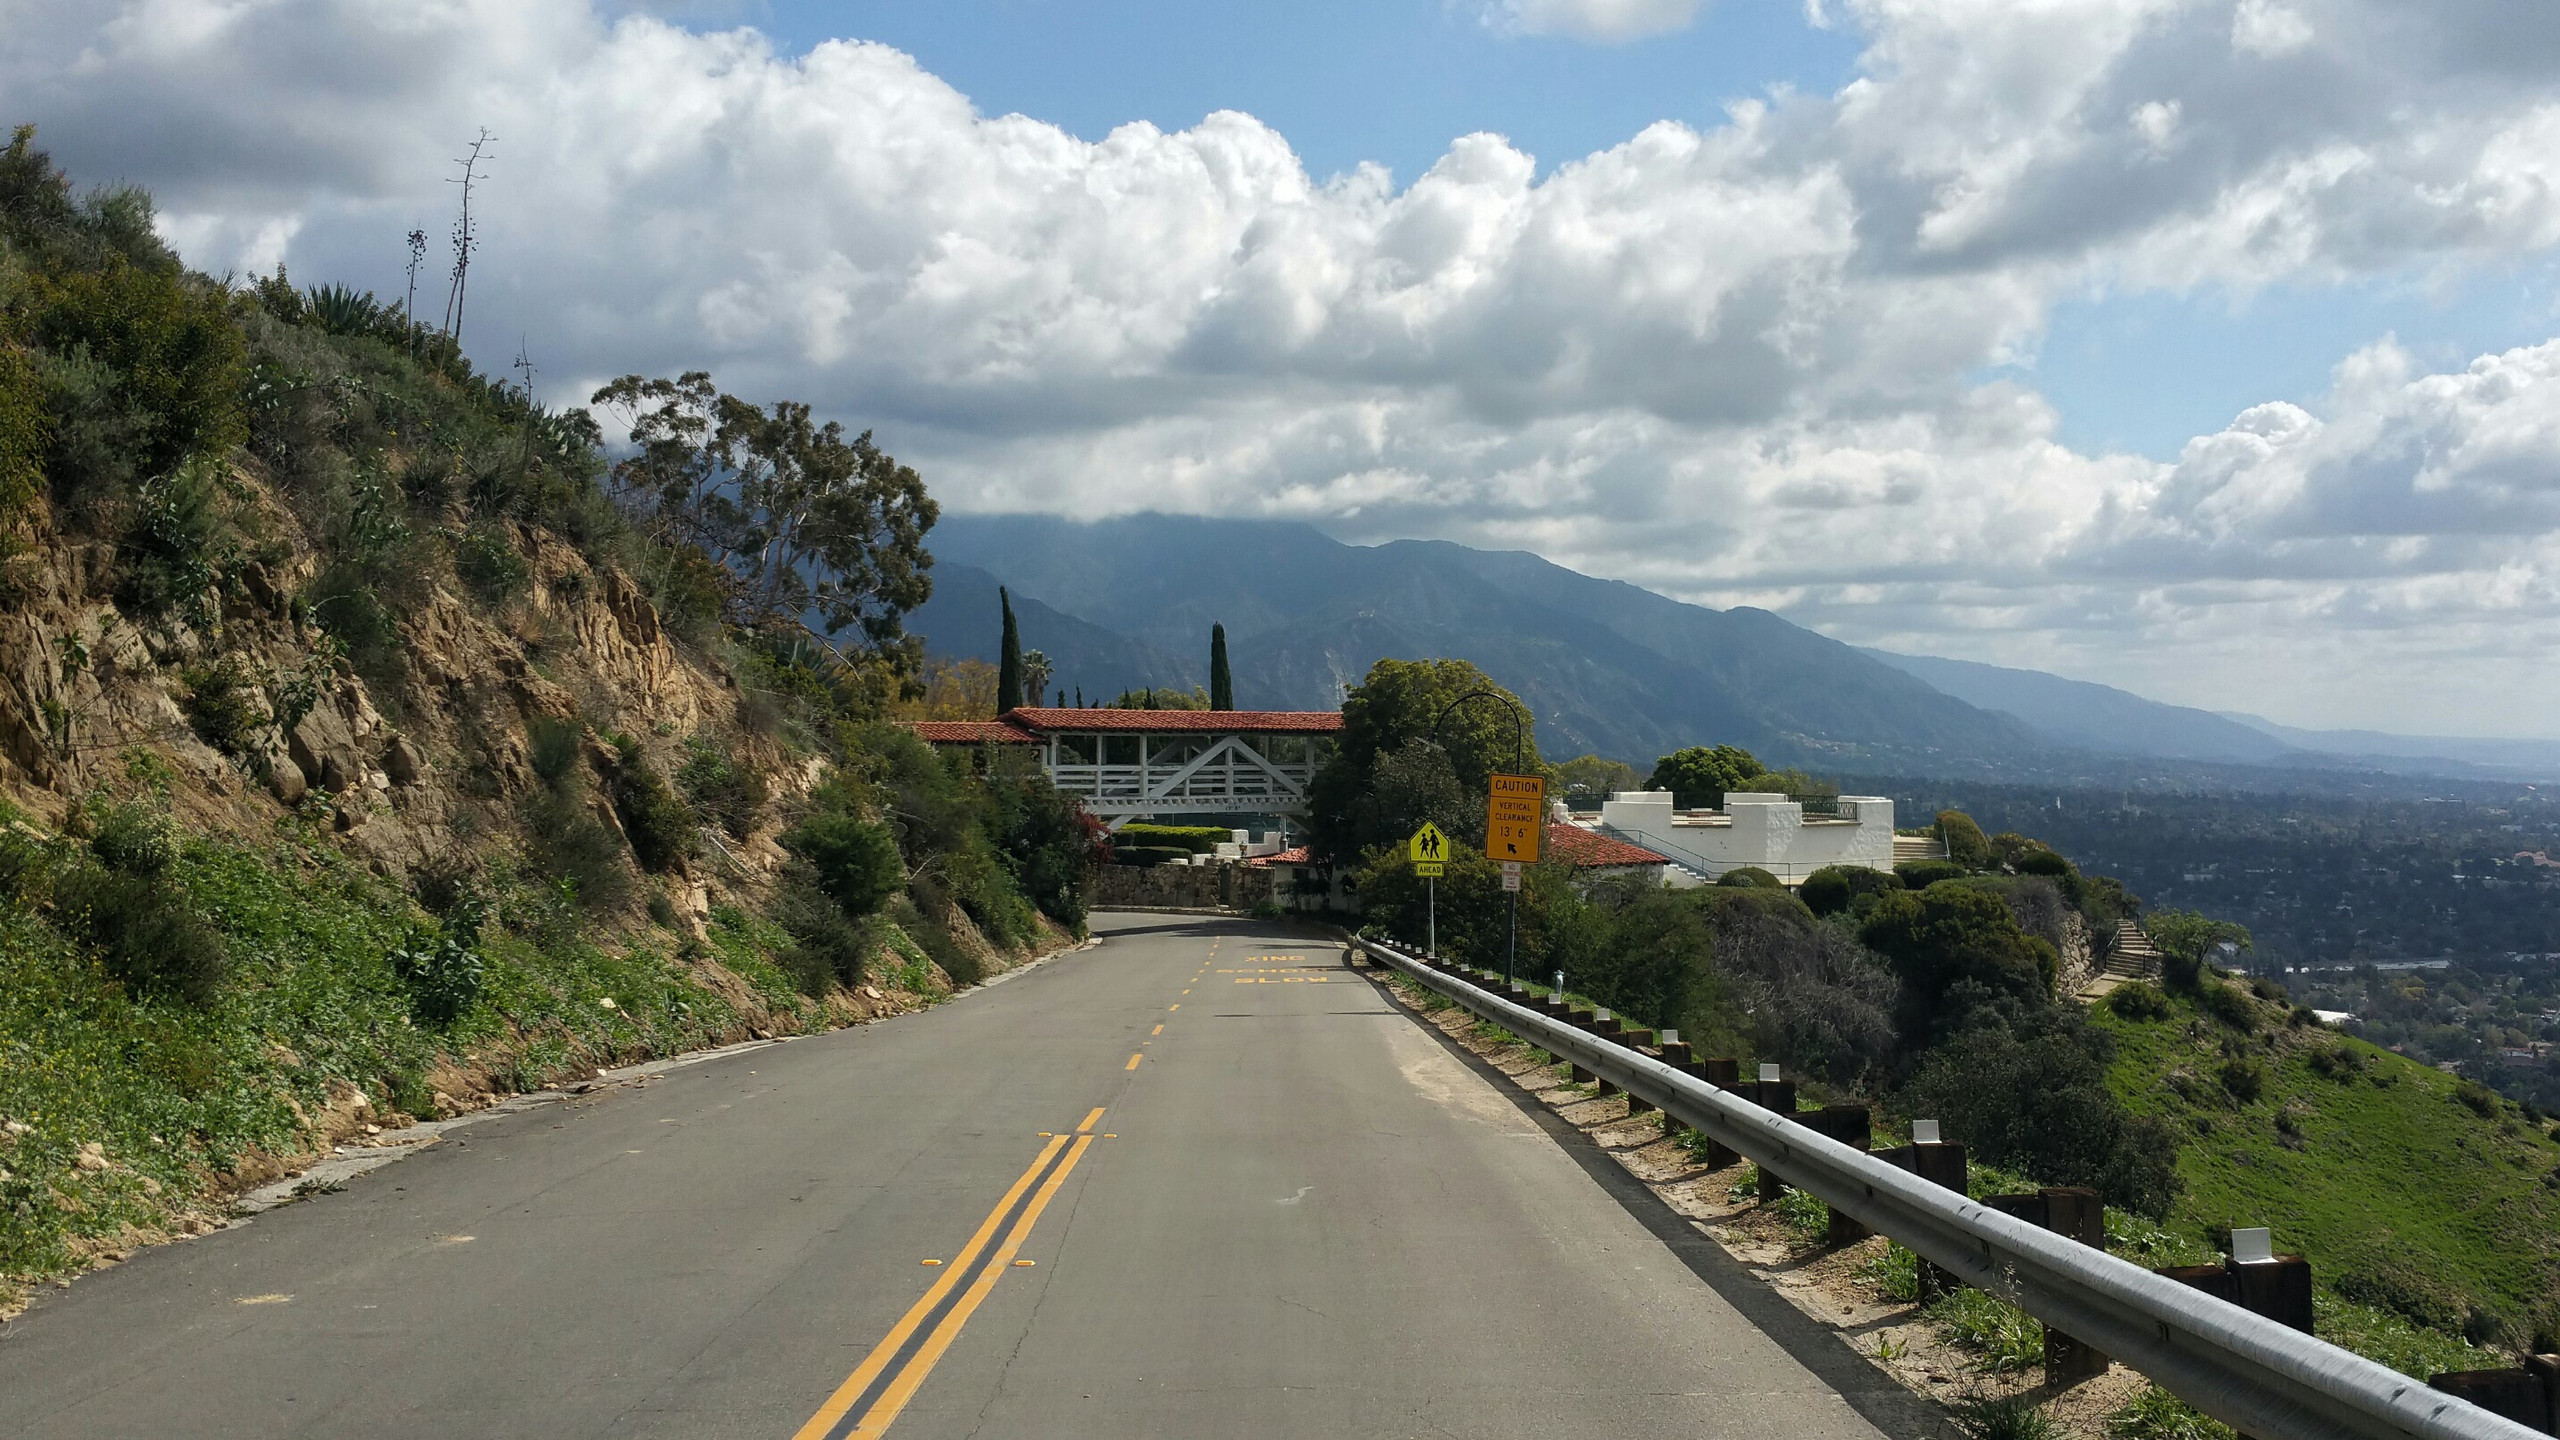 Riding the hills above Pasadena and La Canada is always a challenge.